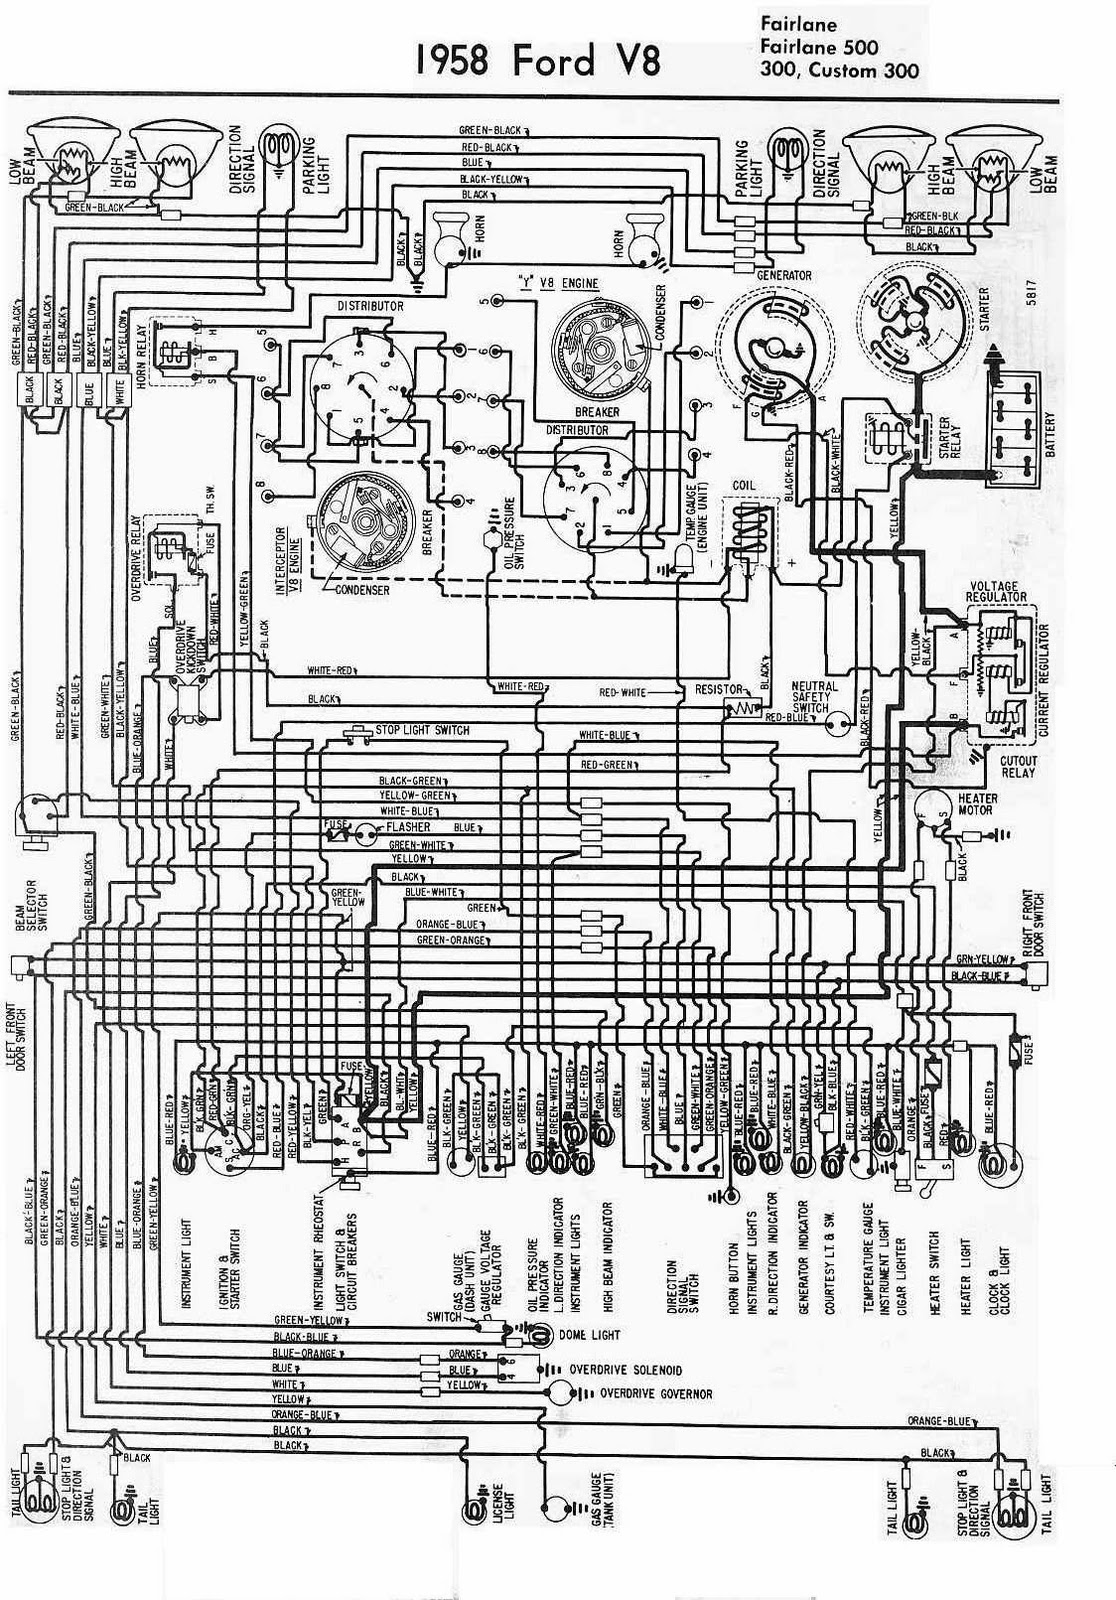 Electrical Wiring Diagram Of Ford F100 All About Trusted 1955 Specifications For 1958 V8 Diagrams Rh Diagramonwiring Blogspot Com